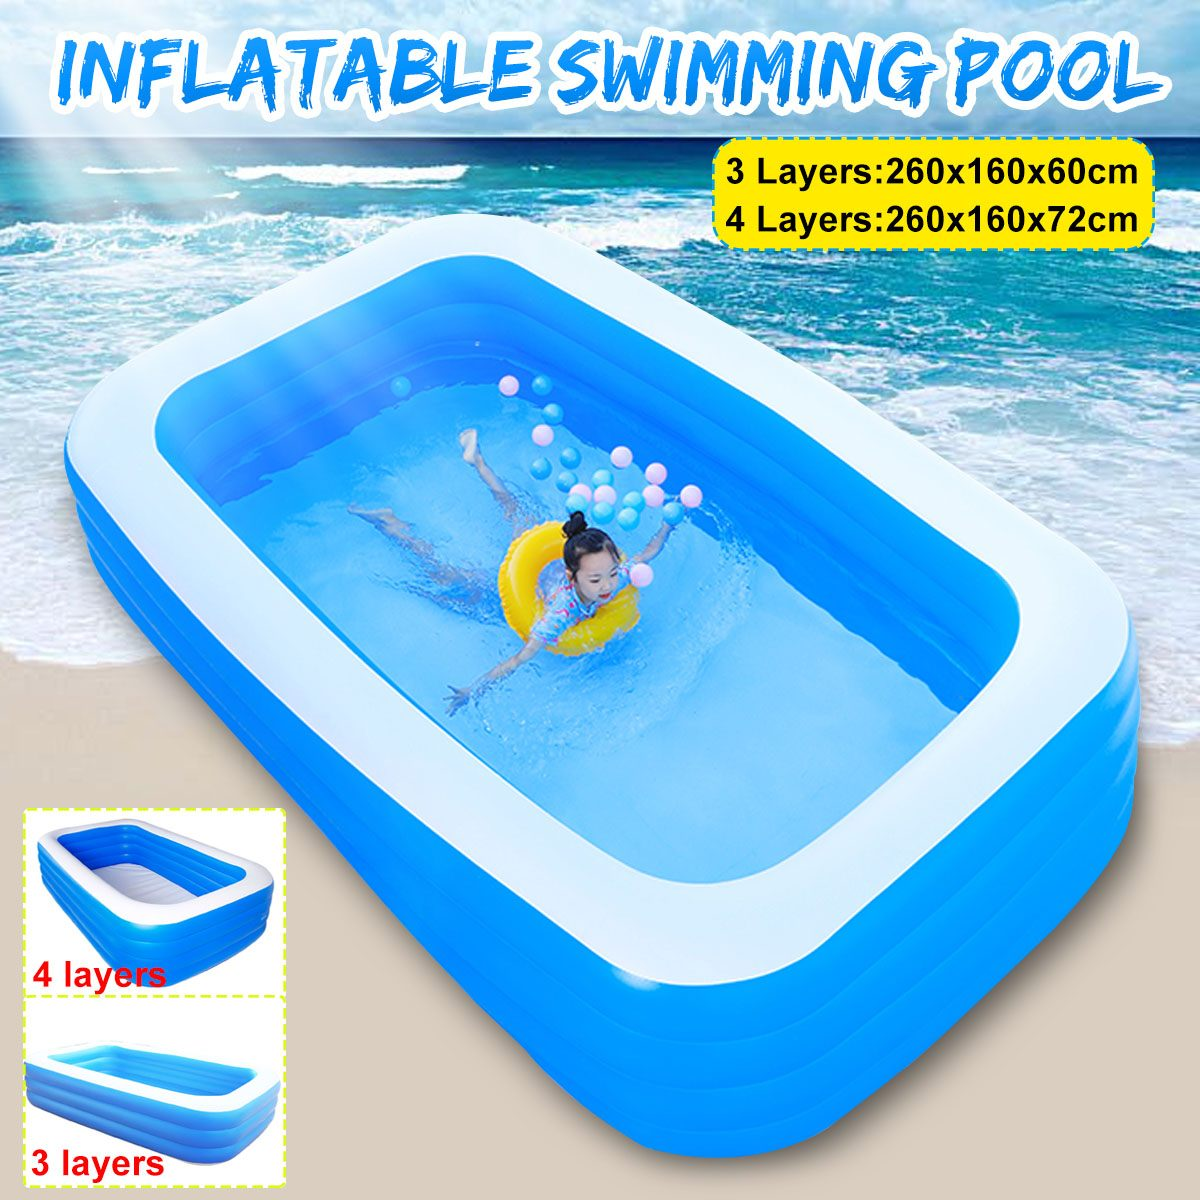 3/4 Layers 260x160x60/72cm Family Home Backyard Inflatable Swimming Pool Outdoor Indoor Adults Kids Pool Bathing Tub Ball Pool